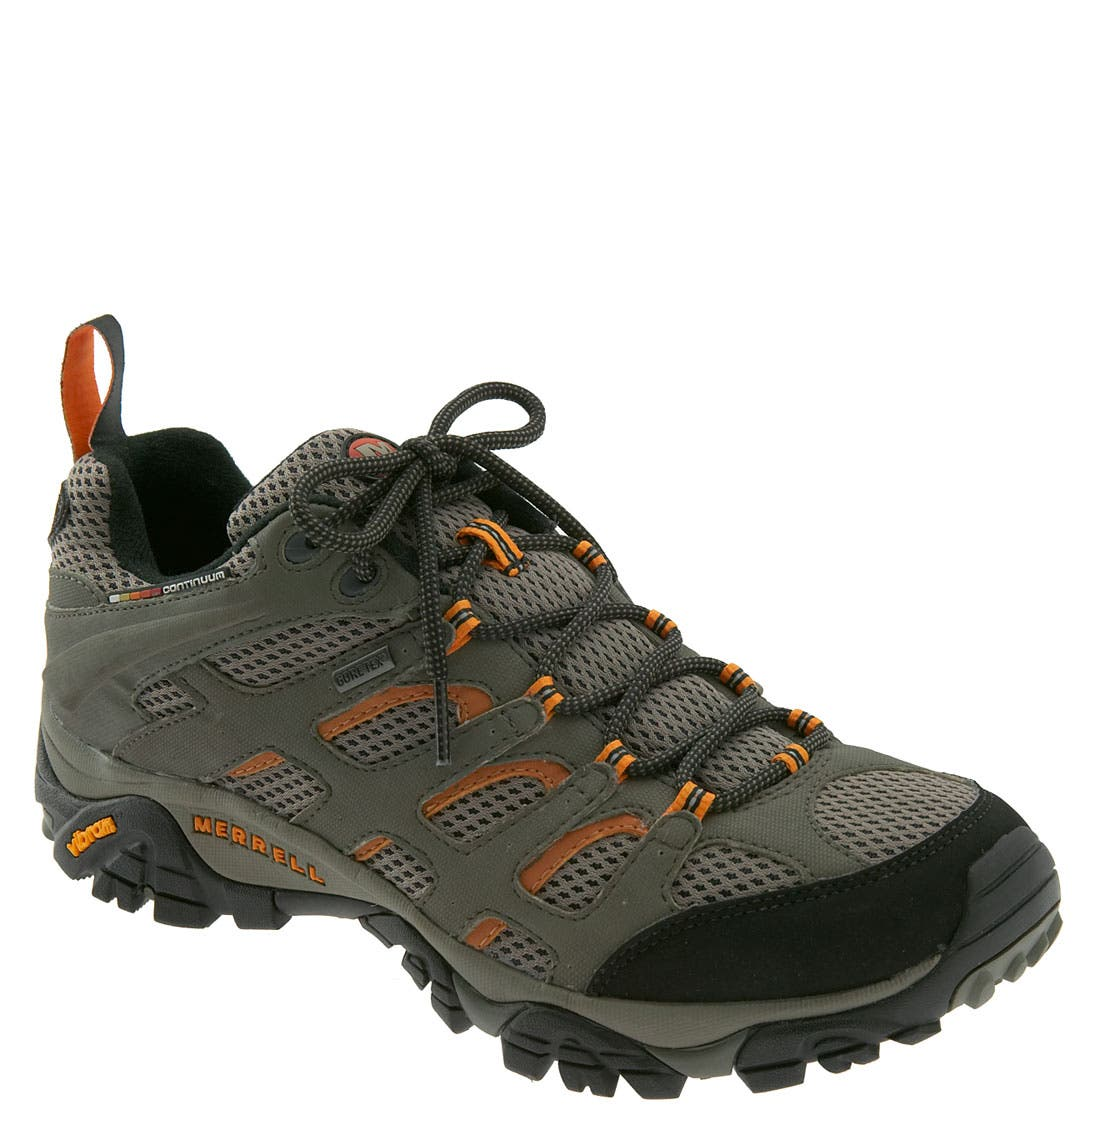 Main Image - Merrell 'Moab GTX XCR' Hiking Shoe (Men)